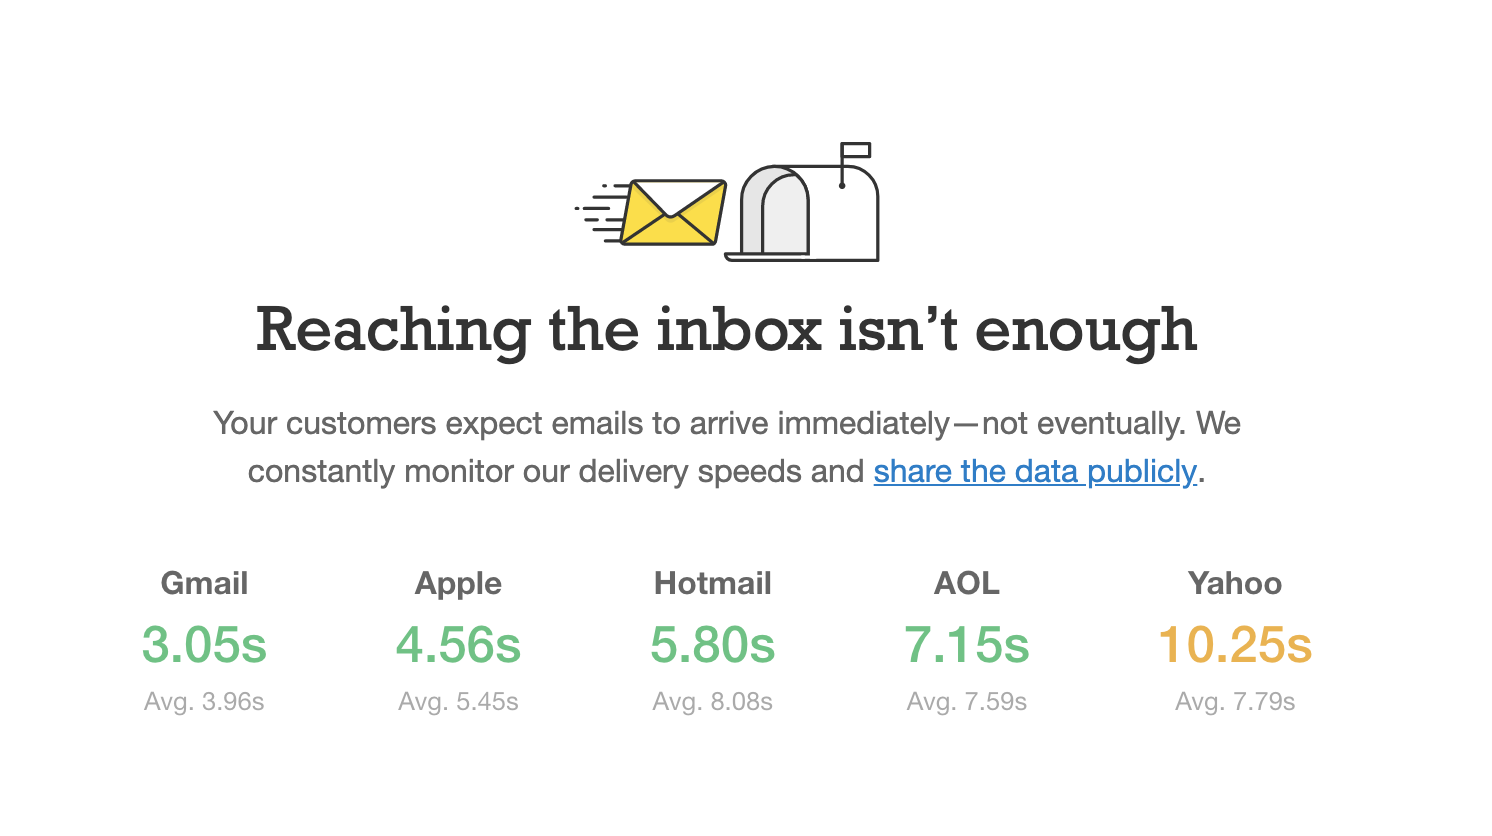 this is a screenshot of postmark's homepage that shows real-time email delivery speed statistics